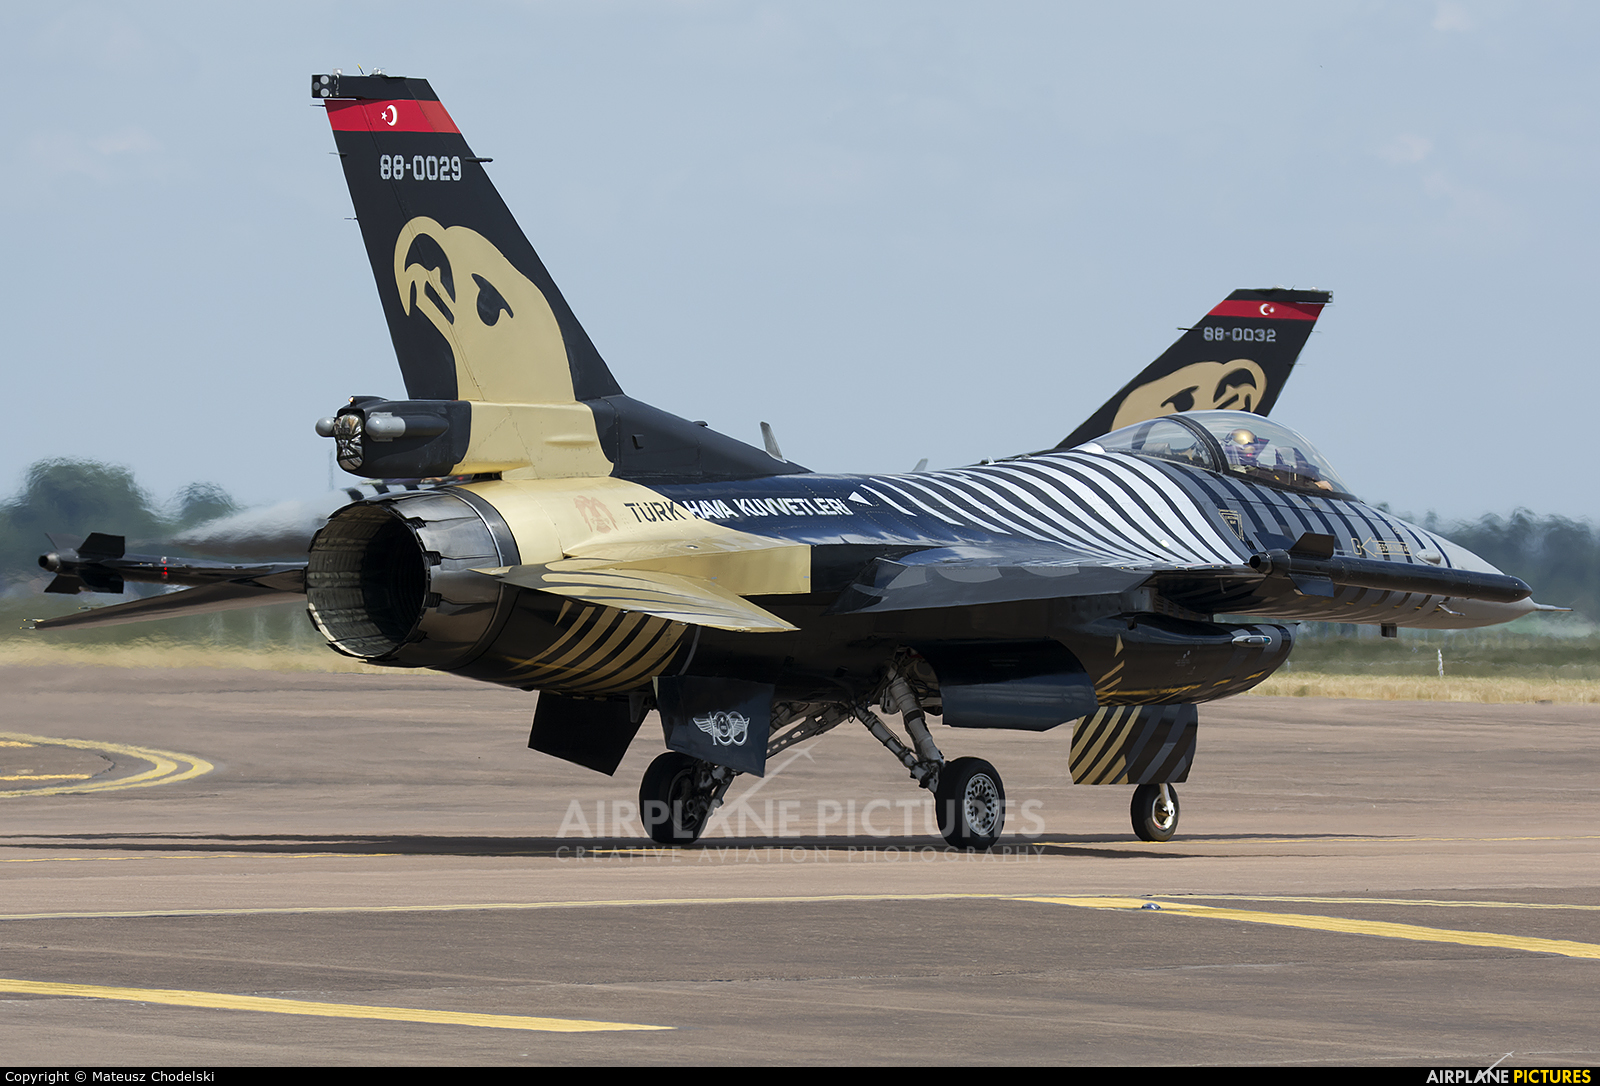 Turkey - Air Force 88-0029 aircraft at Fairford